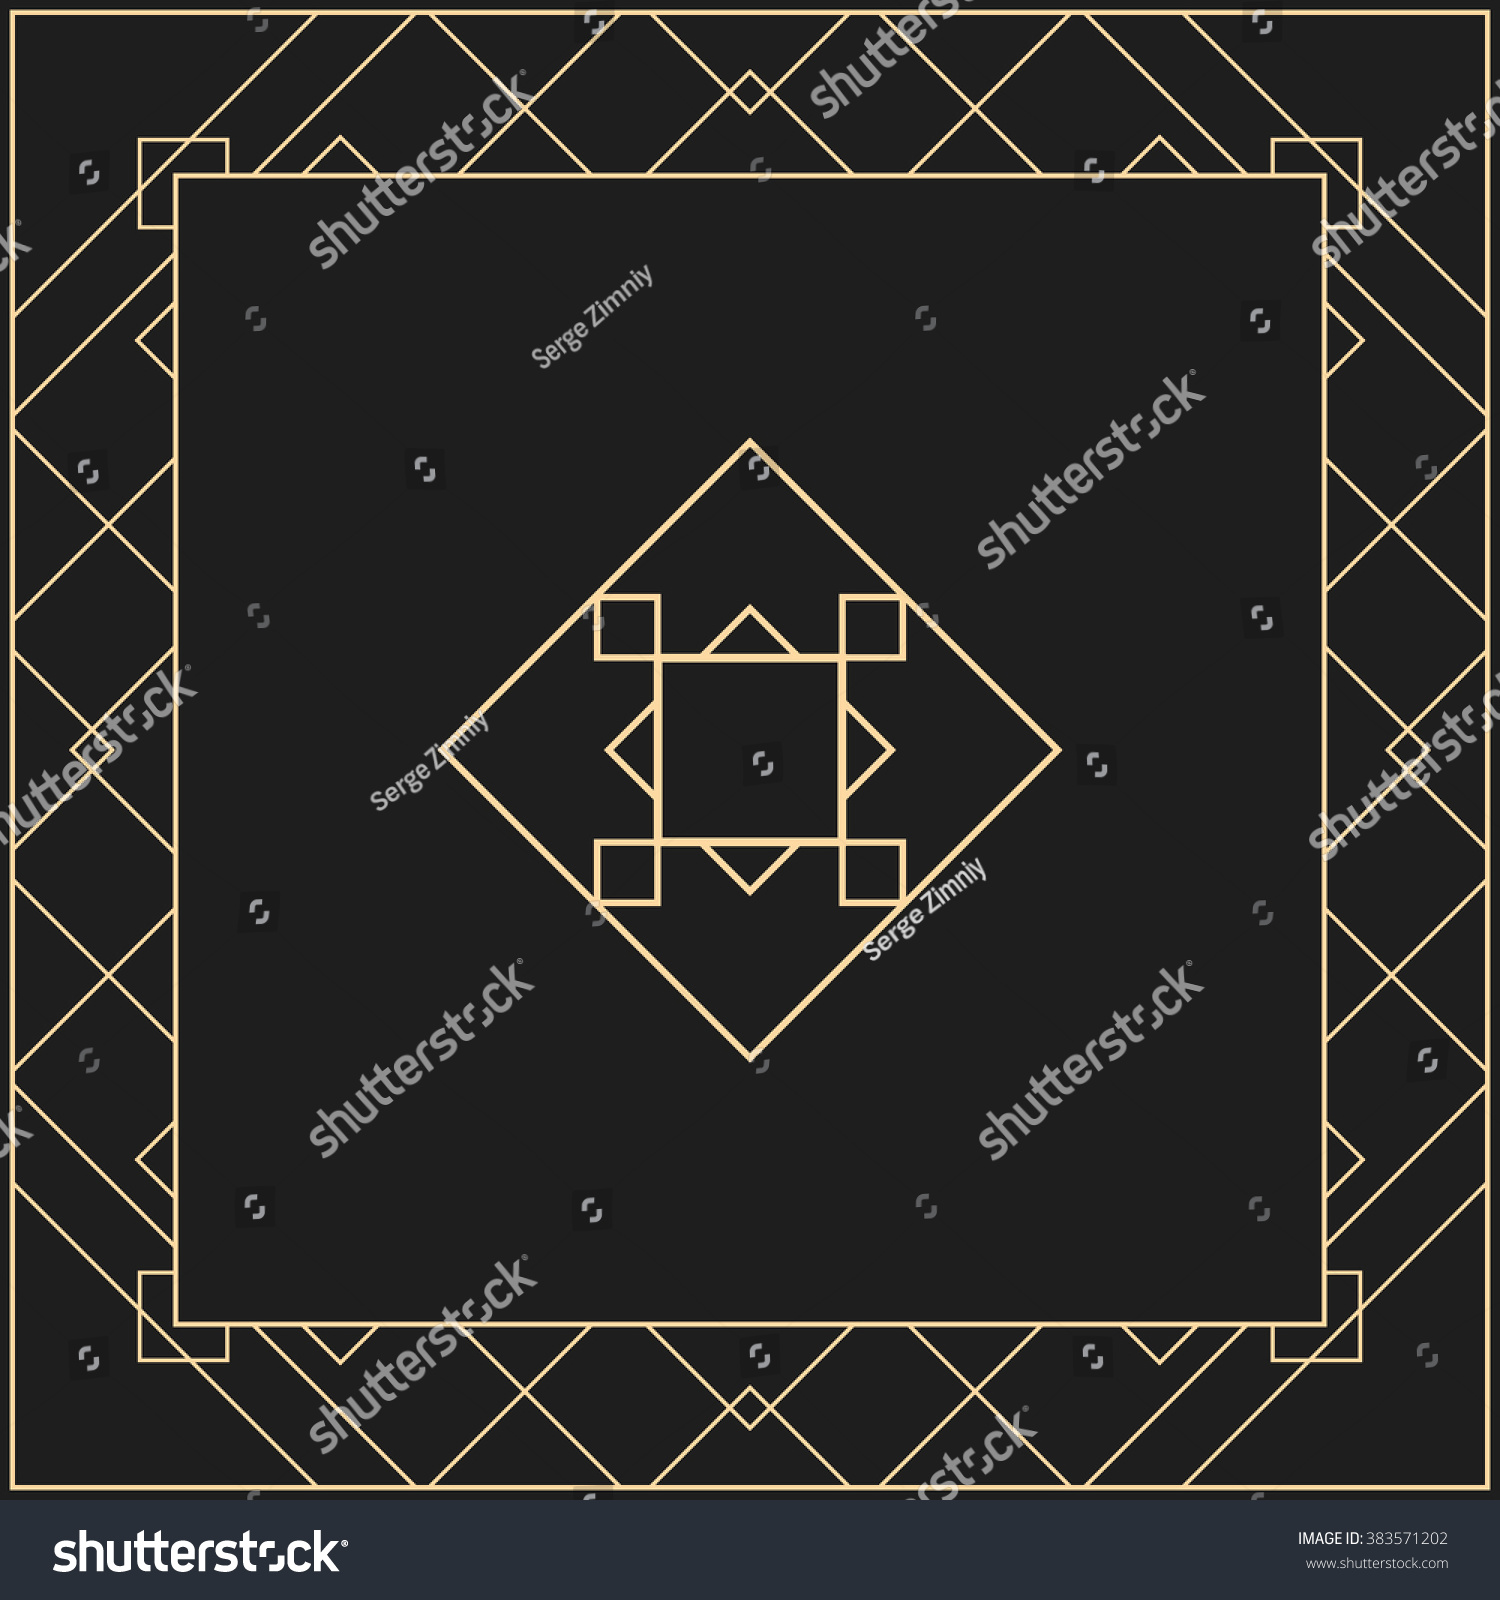 vector geometric frame art deco style stock vector 383571202 shutterstock. Black Bedroom Furniture Sets. Home Design Ideas